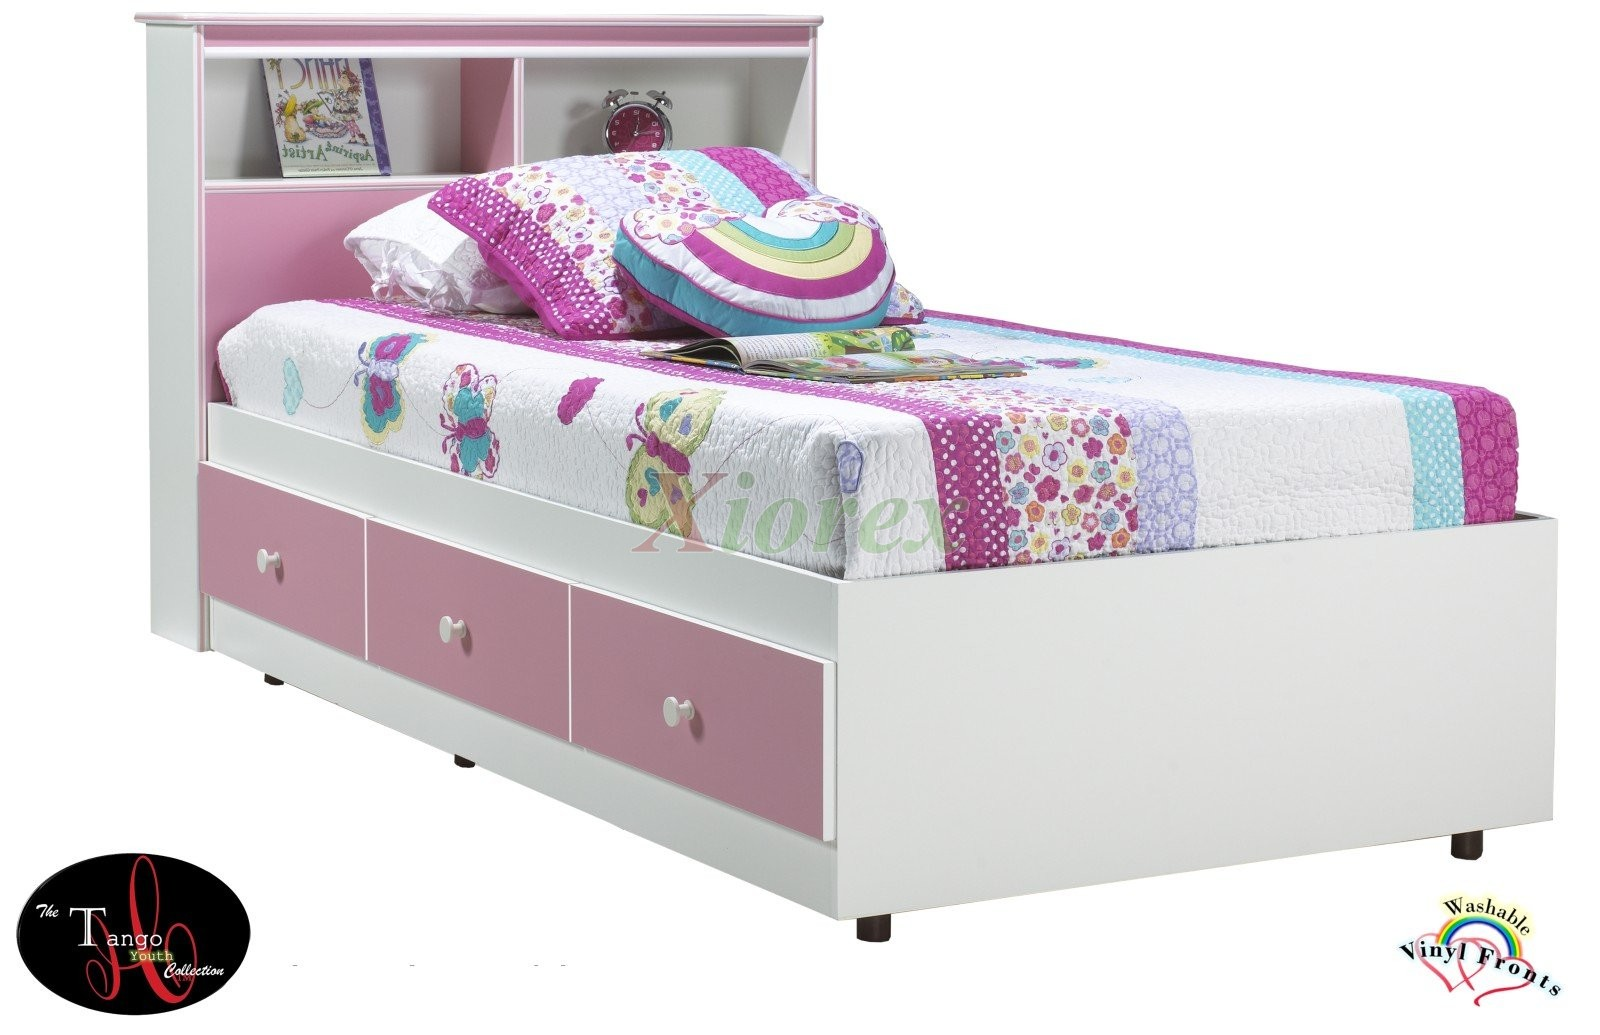 More Views Boys Girls Twin Mates Bed Double Queen Tango Beds